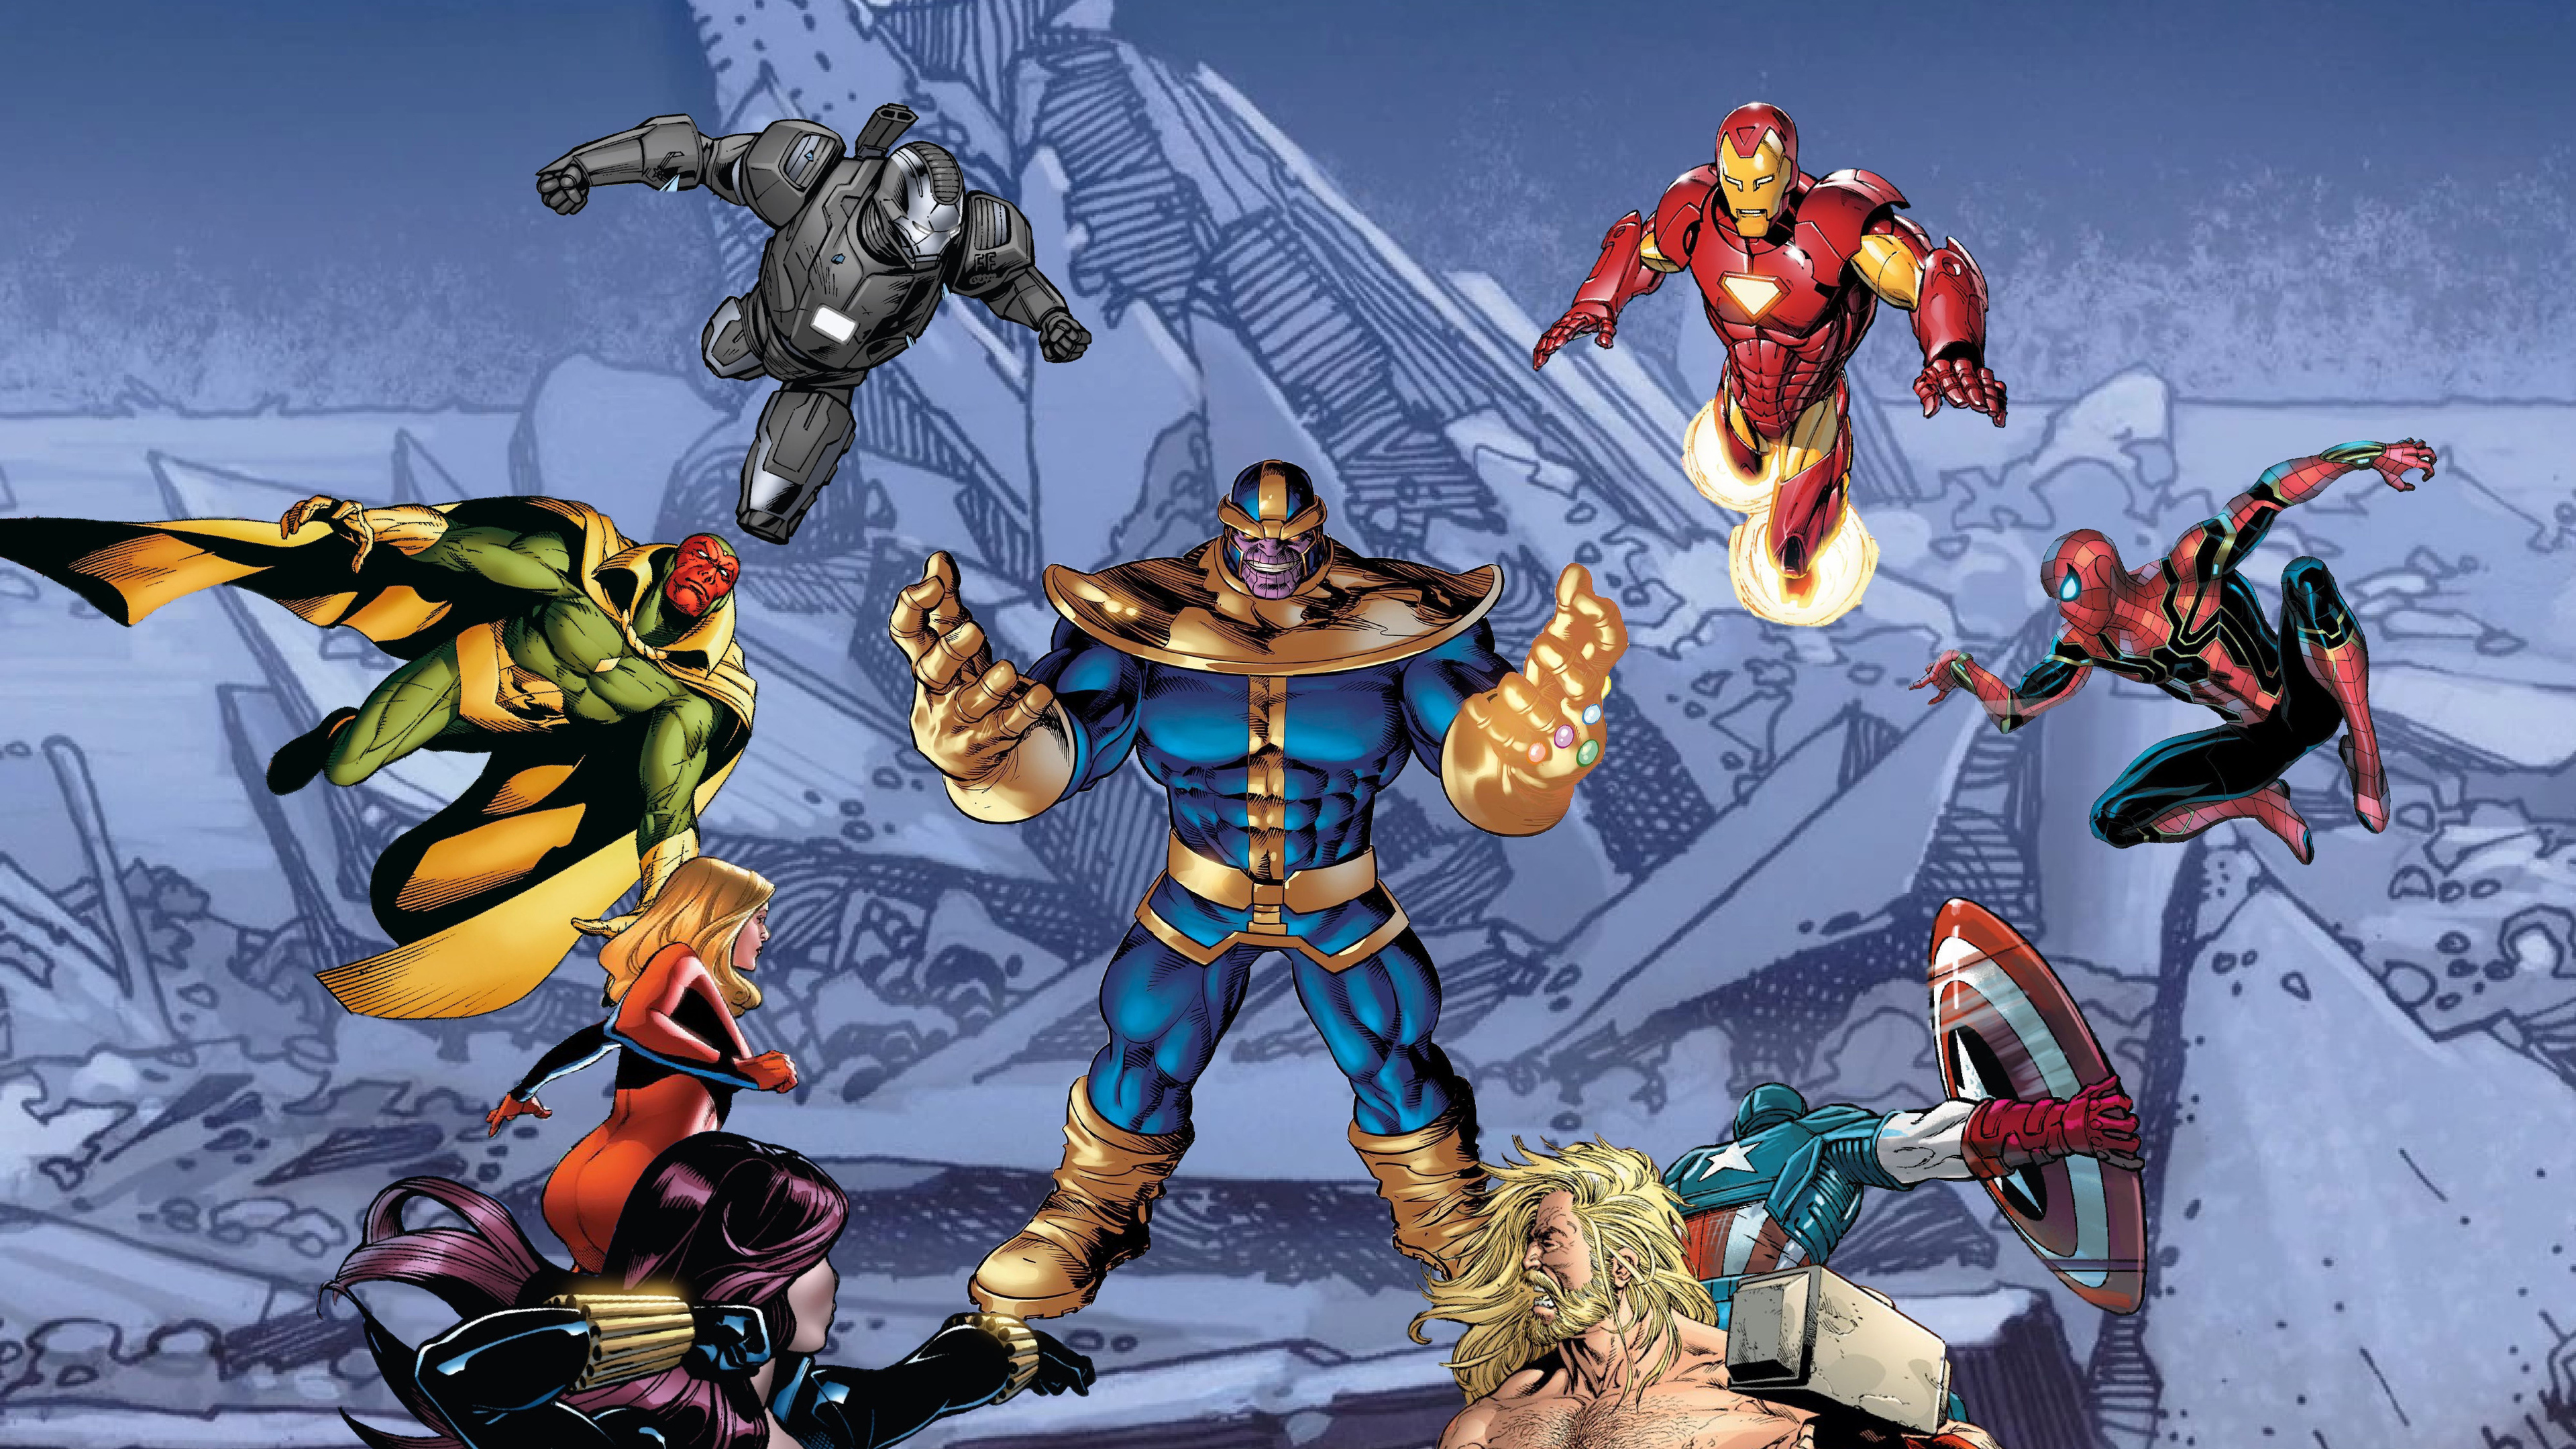 thanos vs superheroes 4k 1557260037 - Thanos Vs Superheroes 4k - war machine wallpapers, thor wallpapers, thanos-wallpapers, superheroes wallpapers, spiderman wallpapers, iron man wallpapers, hd-wallpapers, digital art wallpapers, captain marvel wallpapers, captain america wallpapers, artwork wallpapers, artist wallpapers, 8k wallpapers, 5k wallpapers, 4k-wallpapers